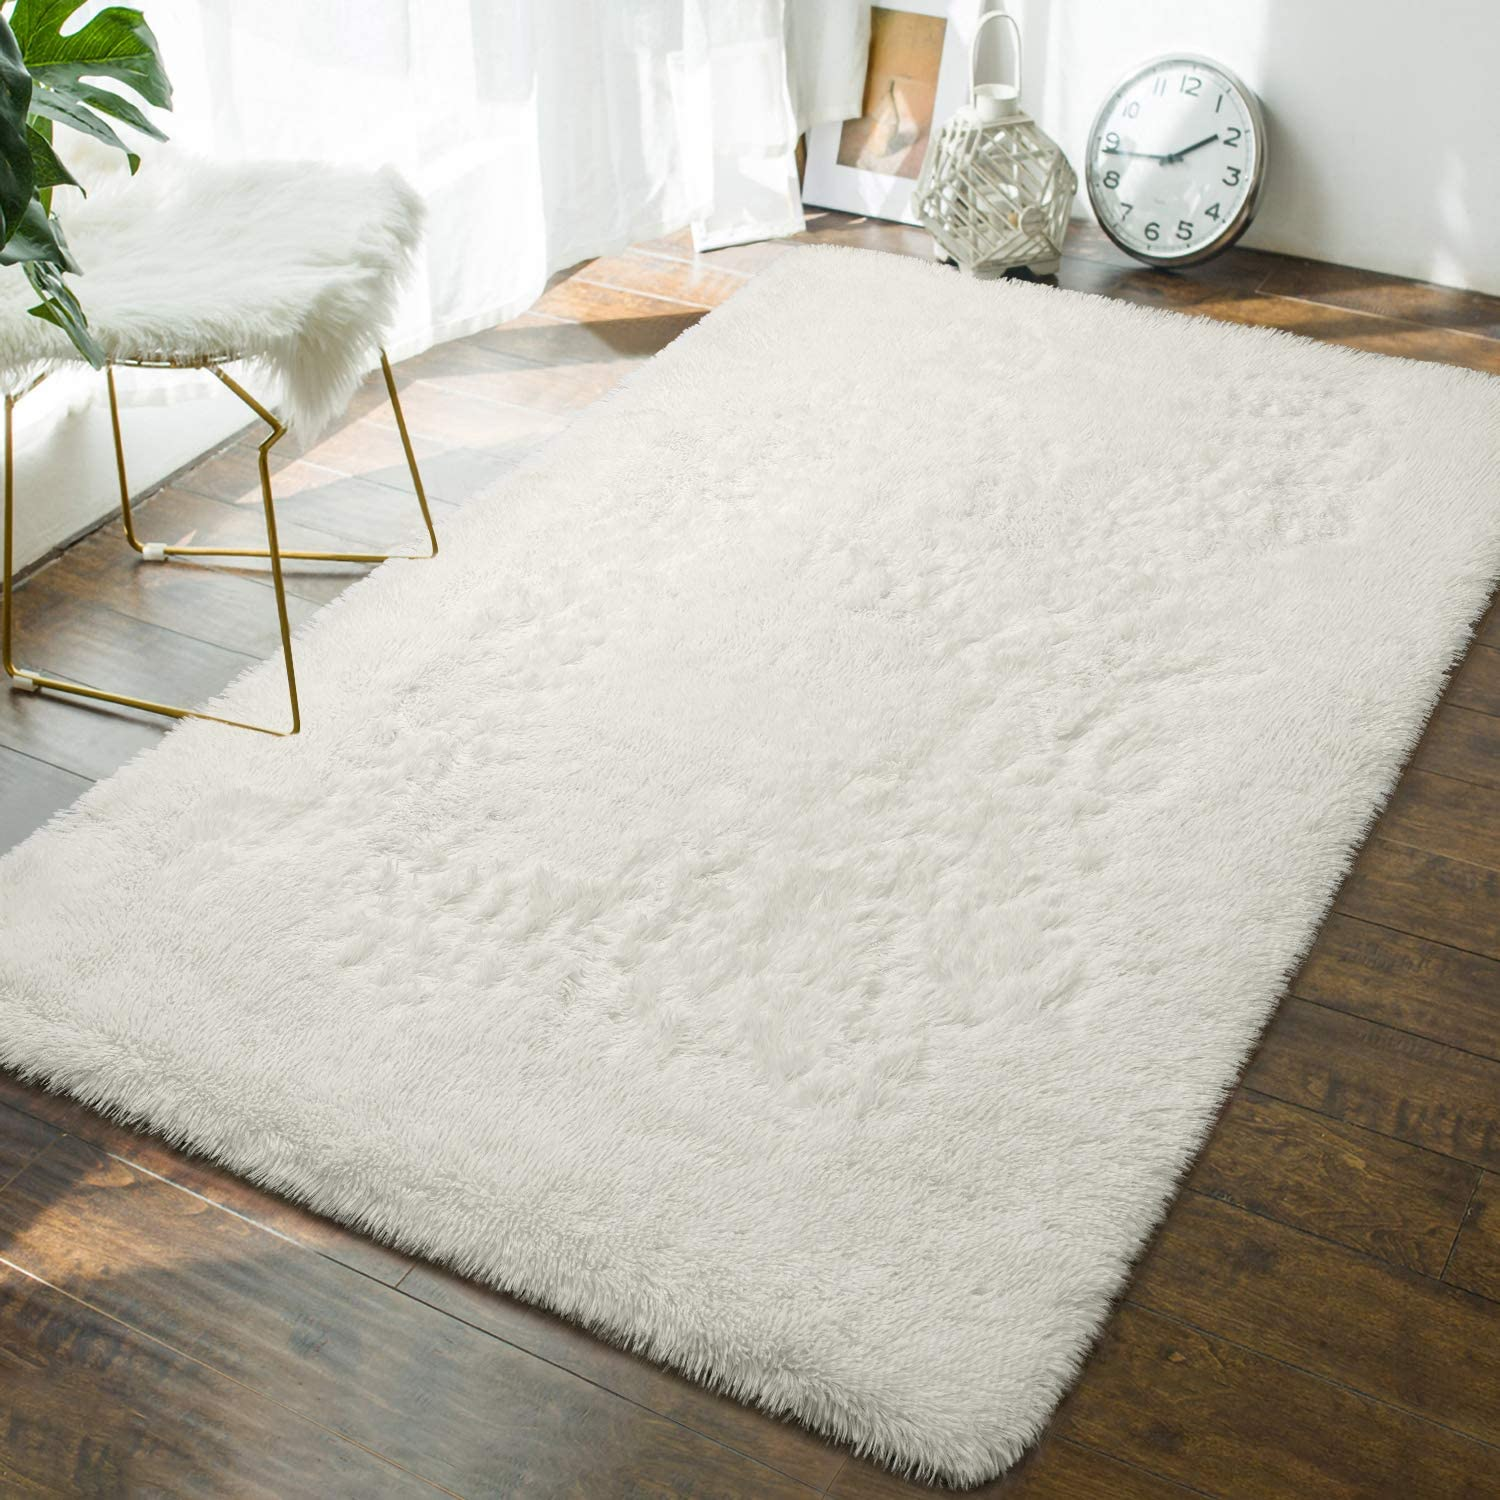 Andecor Soft Fluffy Bedroom Rugs - 4 x 6 Feet Indoor Shaggy Plush Area Rug for Boys Girls Kids Baby College Dorm Living Room Home Decor Floor Carpet, Cream